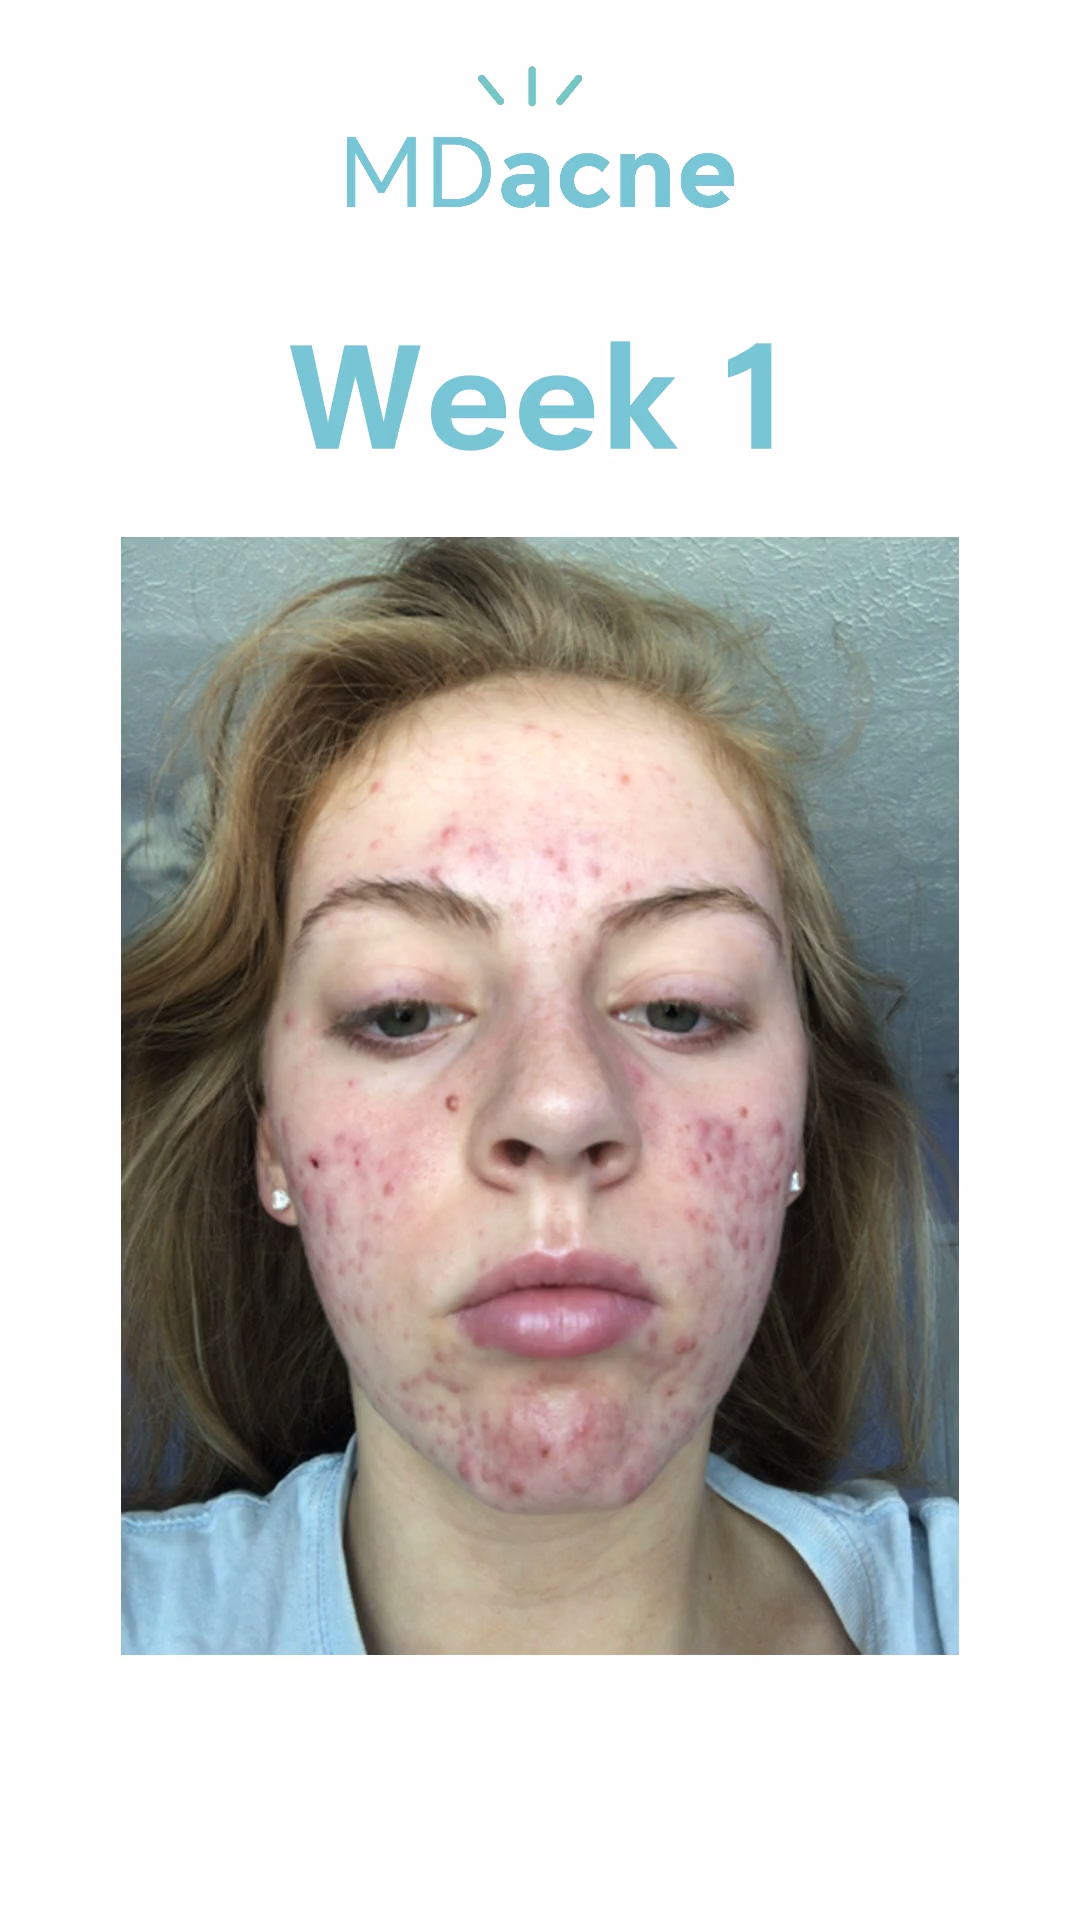 Removal acne videos severe ✨ Watch This